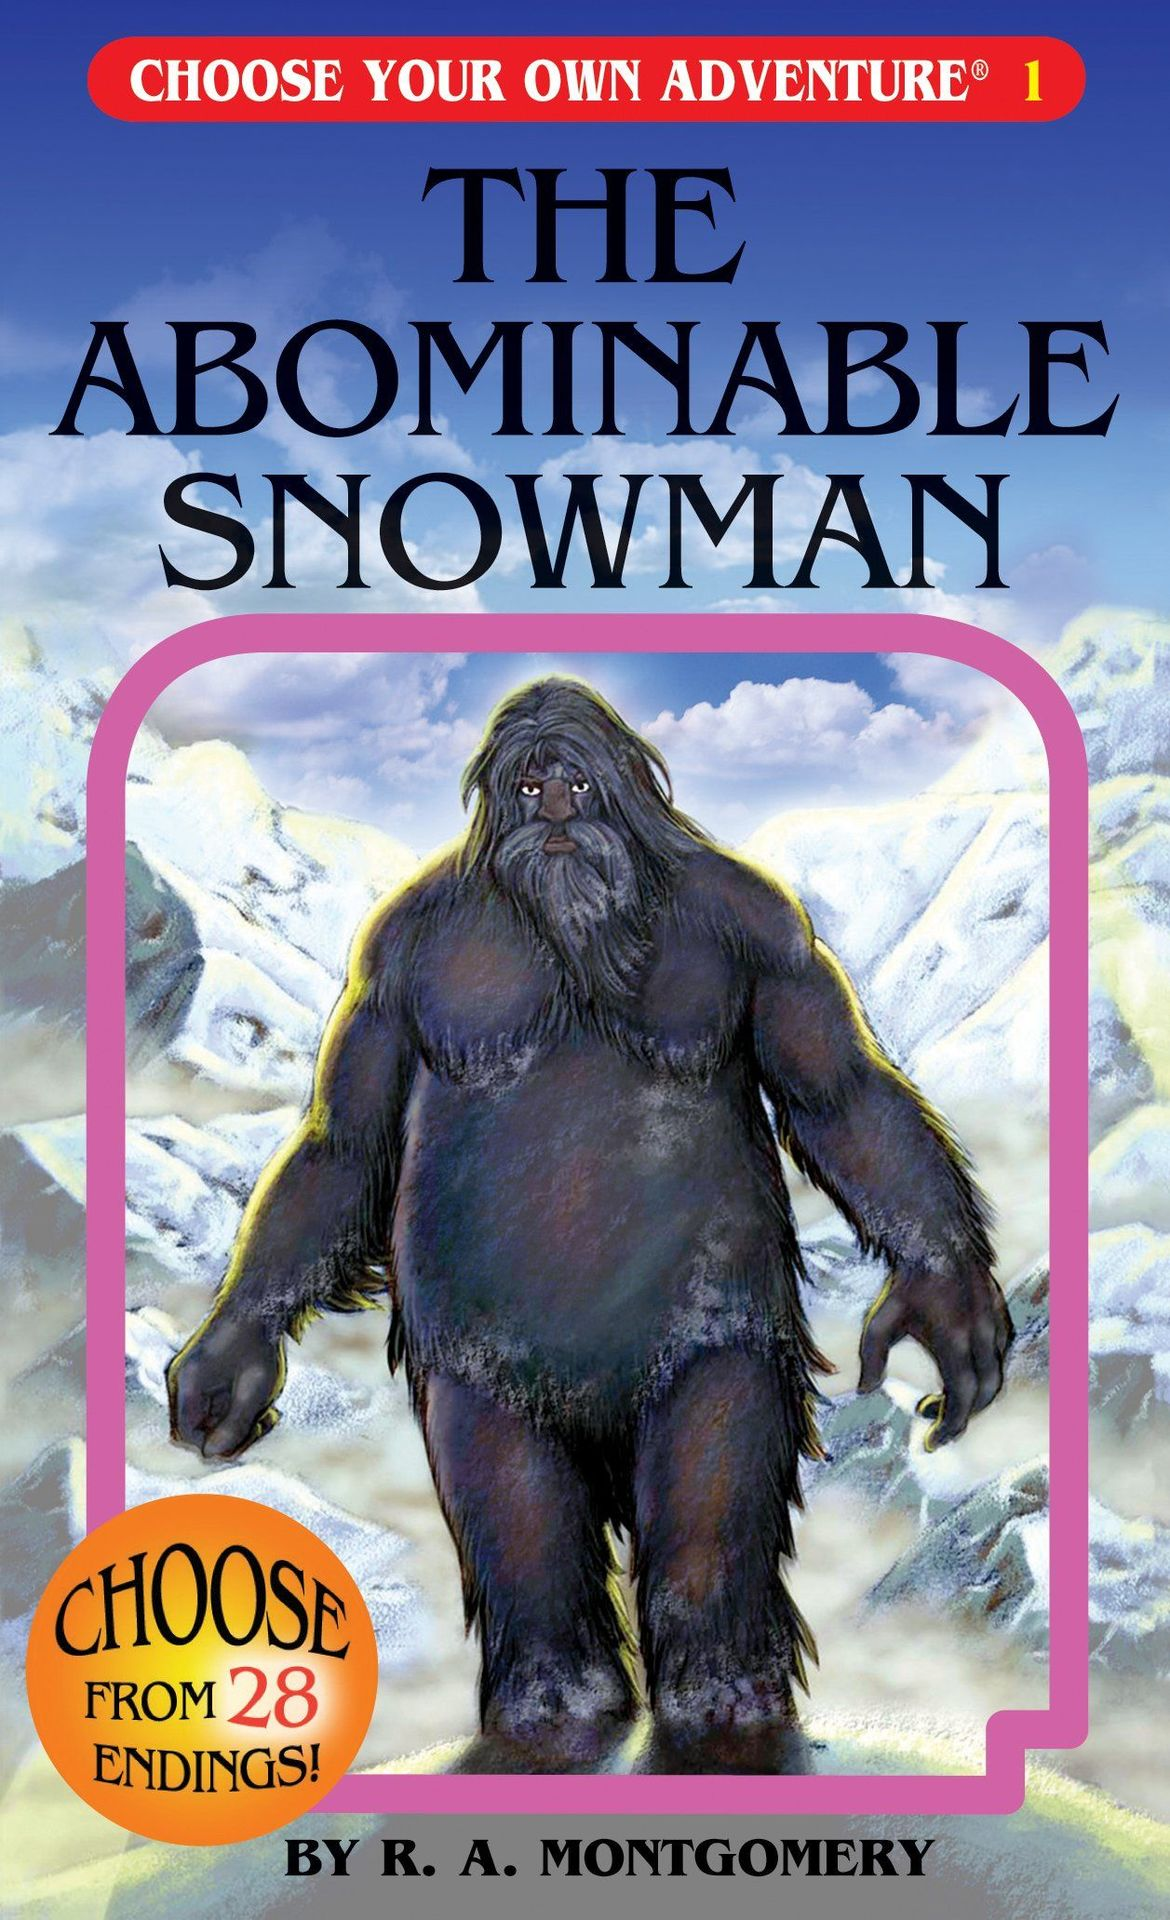 The Abominable Snowman Choose Your Own Adventure